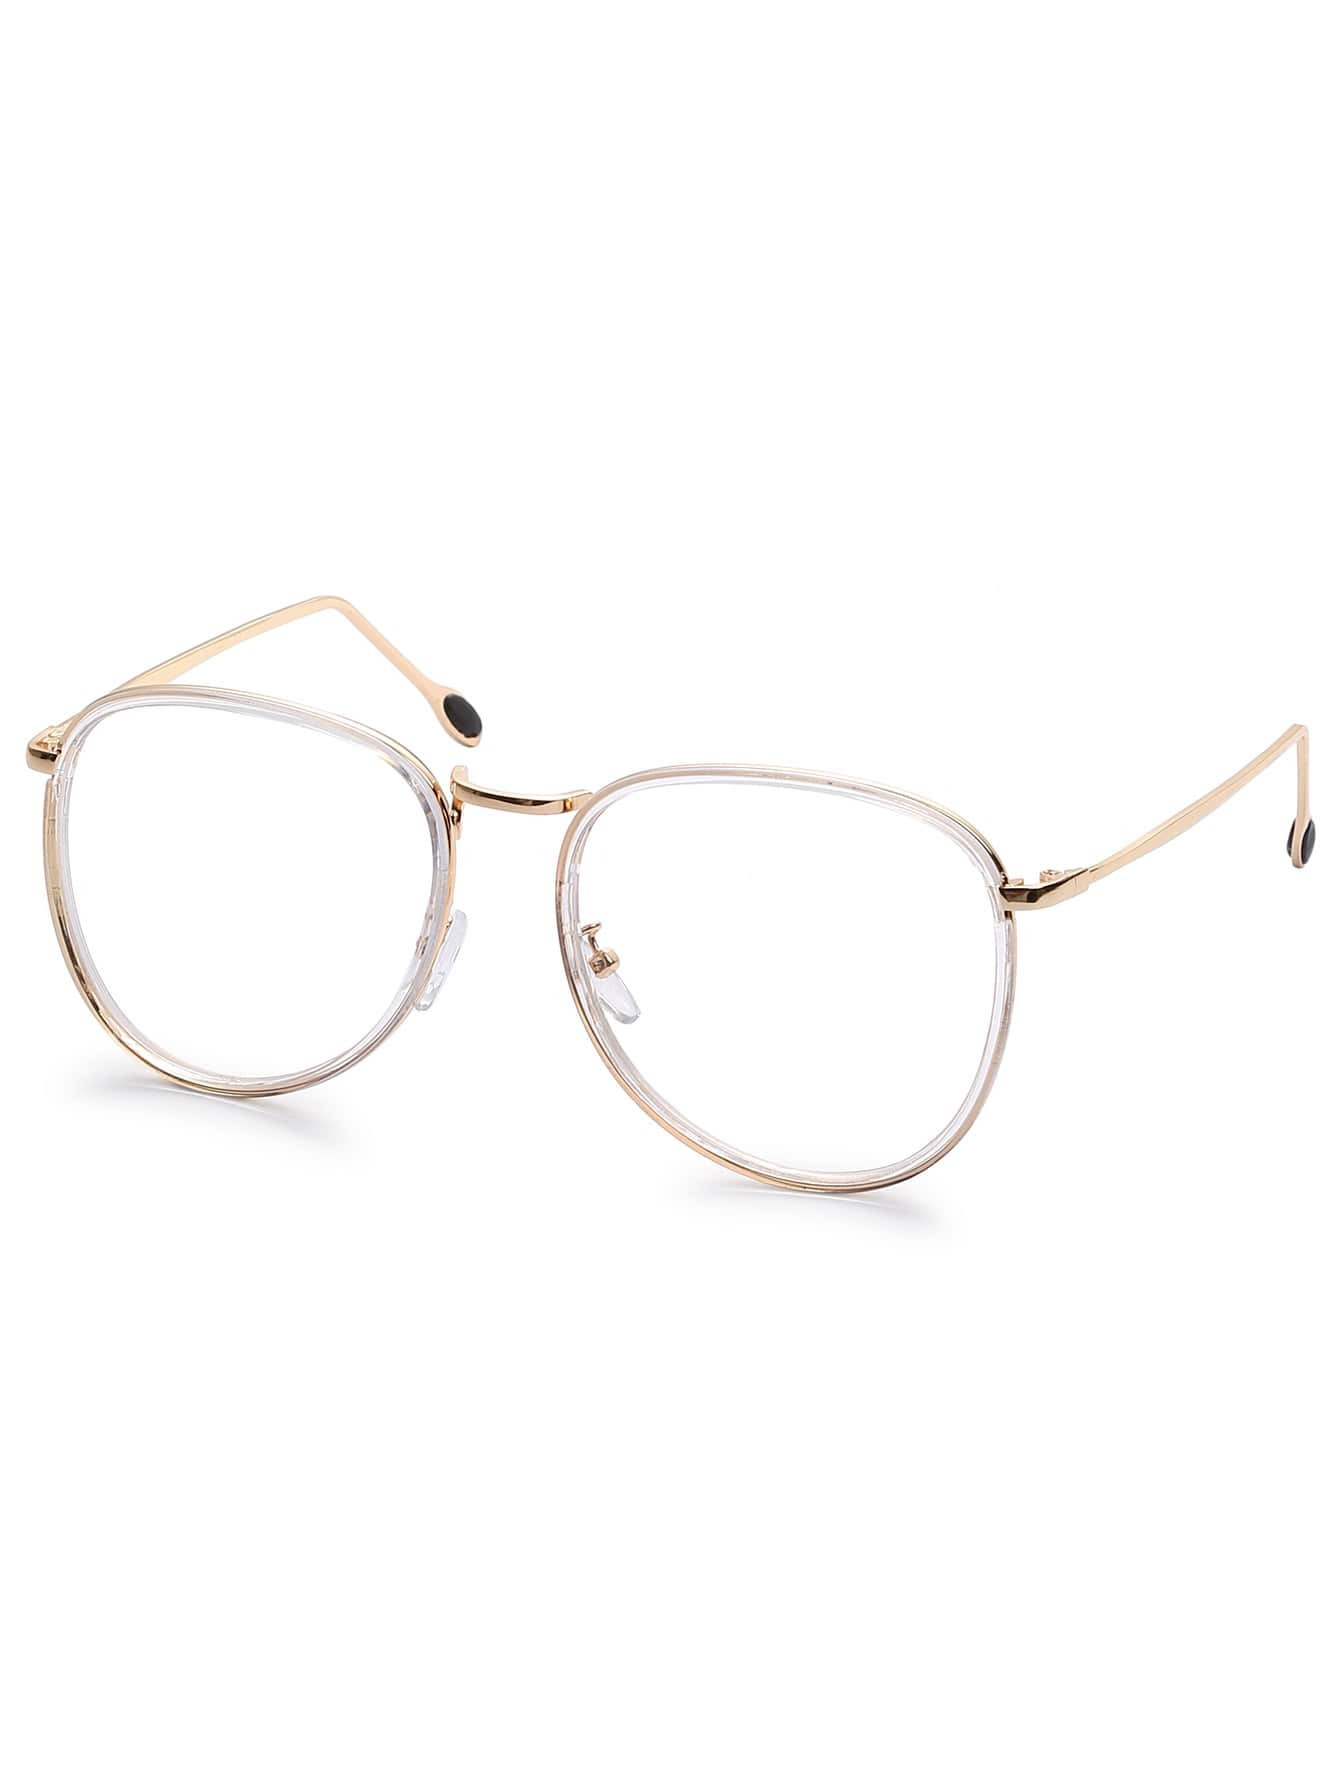 Gold Metal Glasses Frames : Gold Metal Frame Clear Lens Retro Style Glasses -SheIn ...